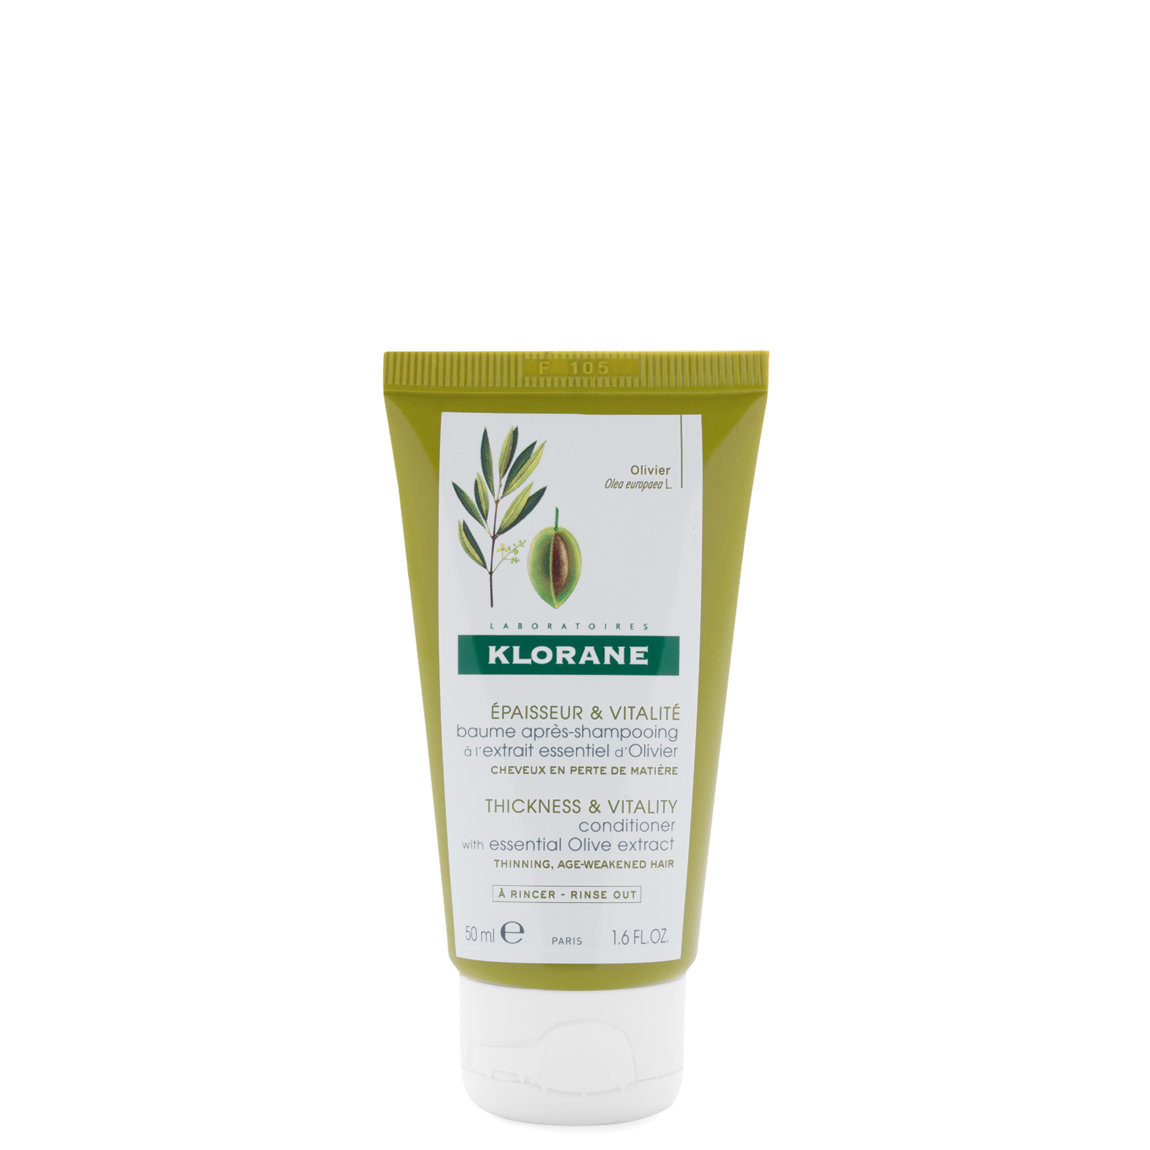 Klorane Conditioner with Essential Olive Extract 1.6 oz alternative view 1 - product swatch.